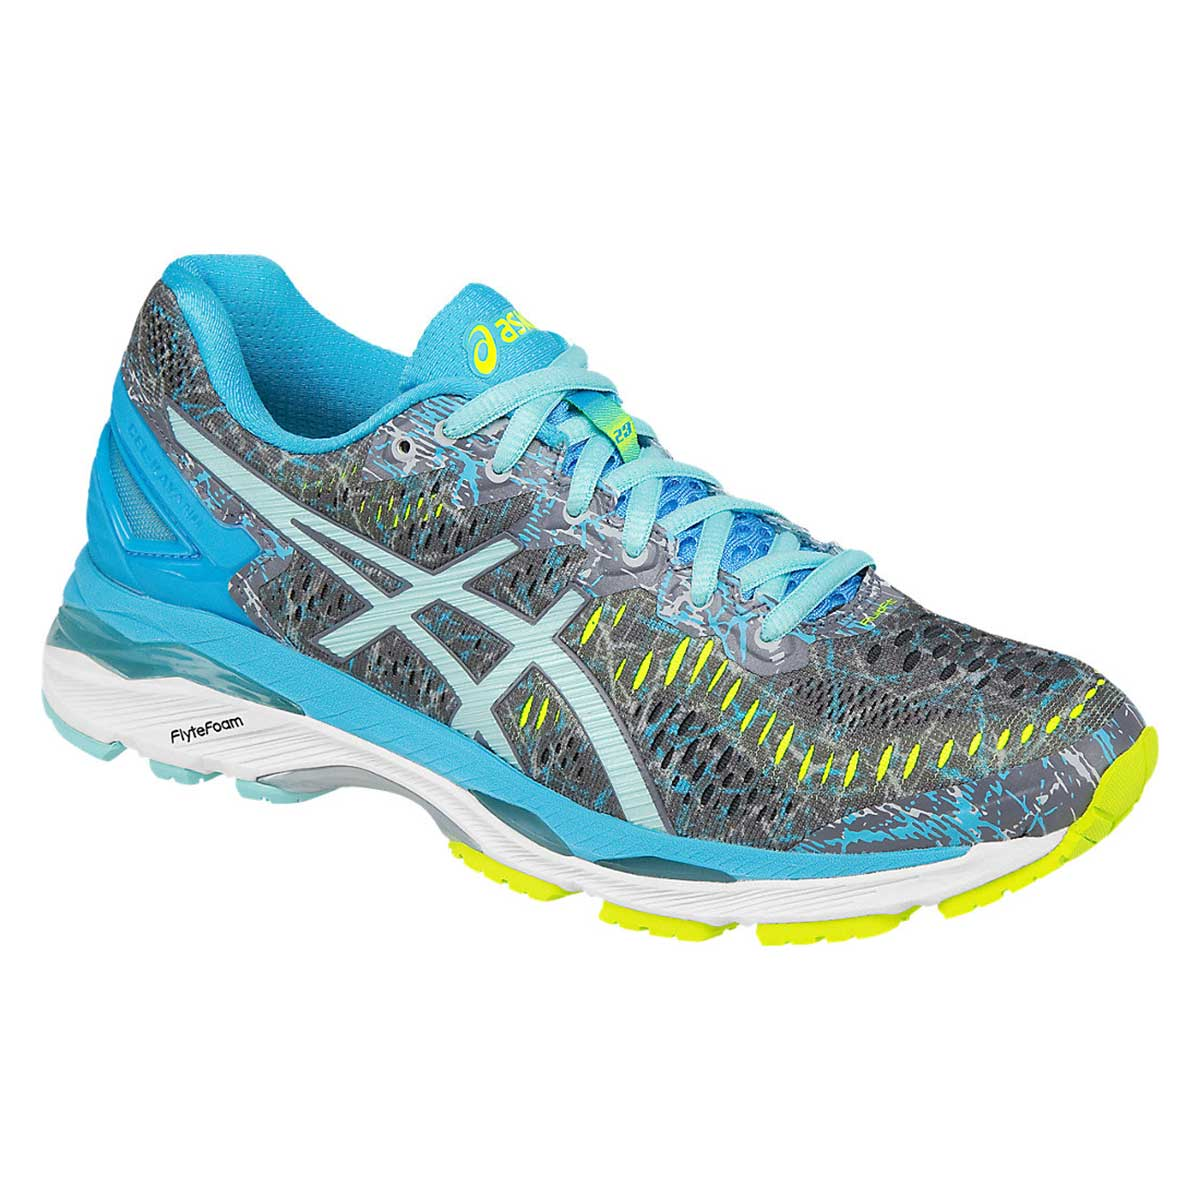 watch 86510 3595a Asics Gel-Kayano 23 Running Shoes (Shark/Aruba Blue/Aquarium)